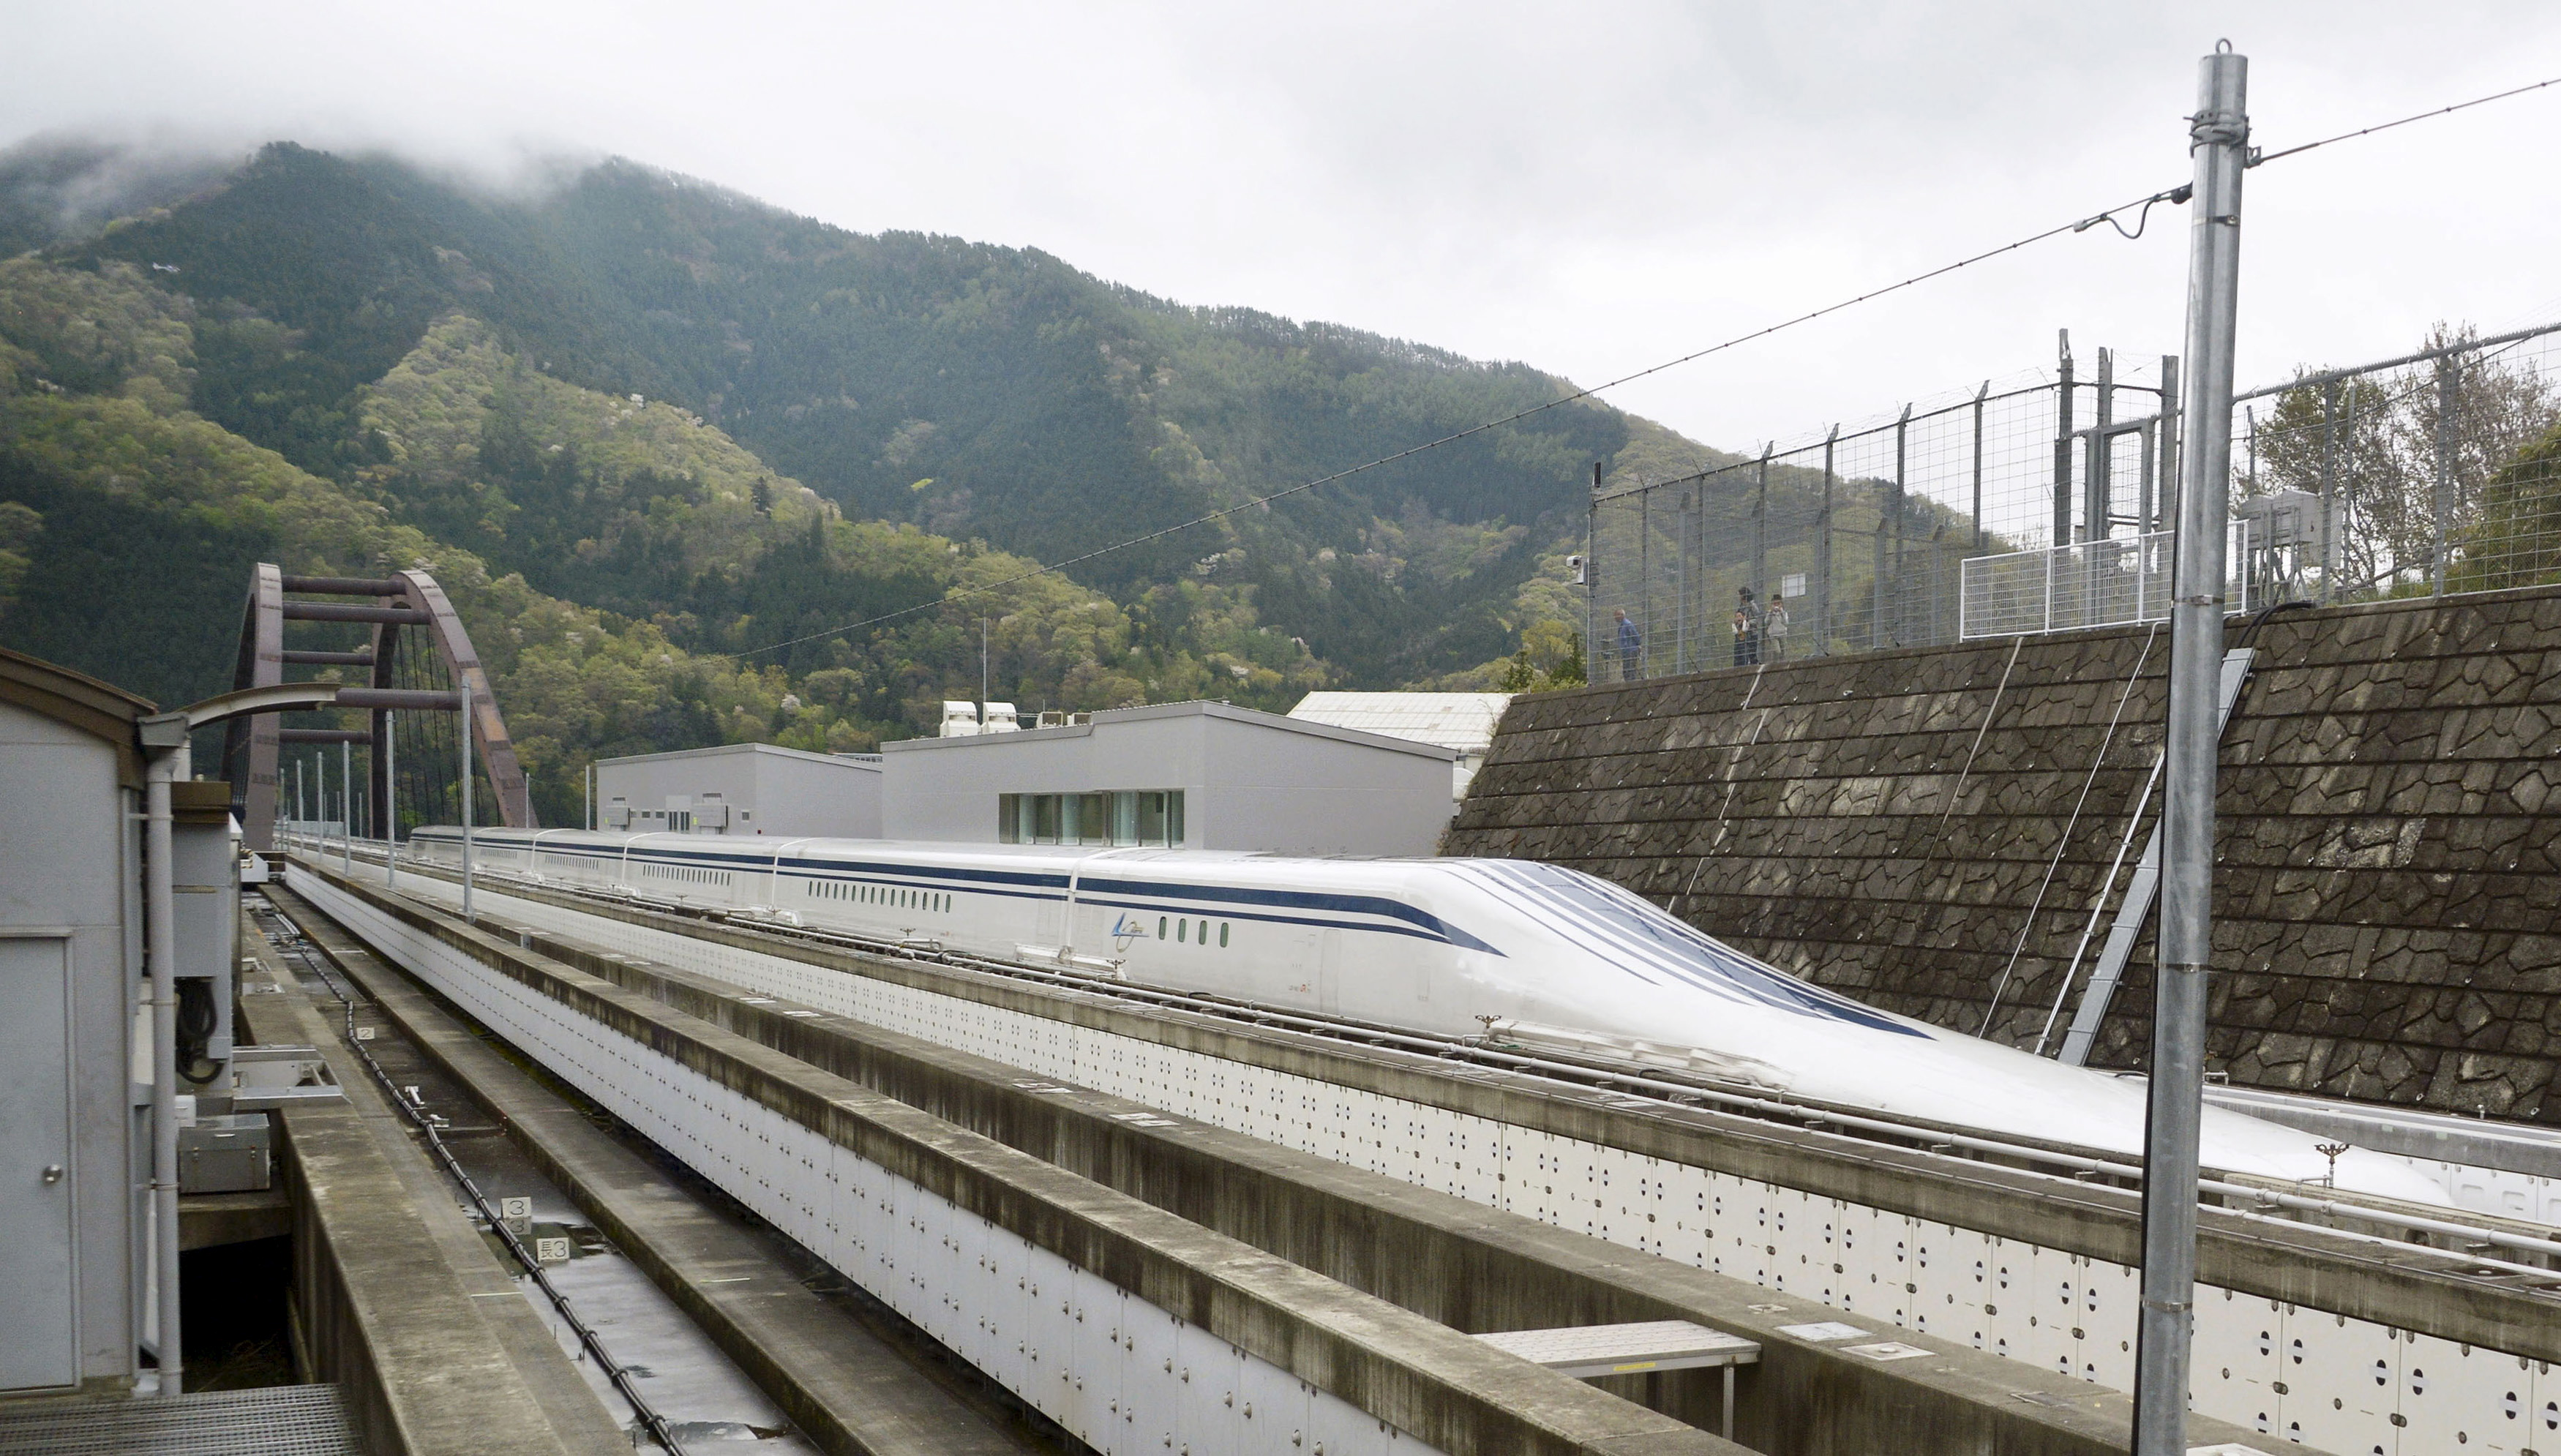 an analysis of the advent of high speed train systems in china Regional economic impact analysis of high  tourism effects of high speed rail projects in china,  mr lixin shi from the institute of economic system and.